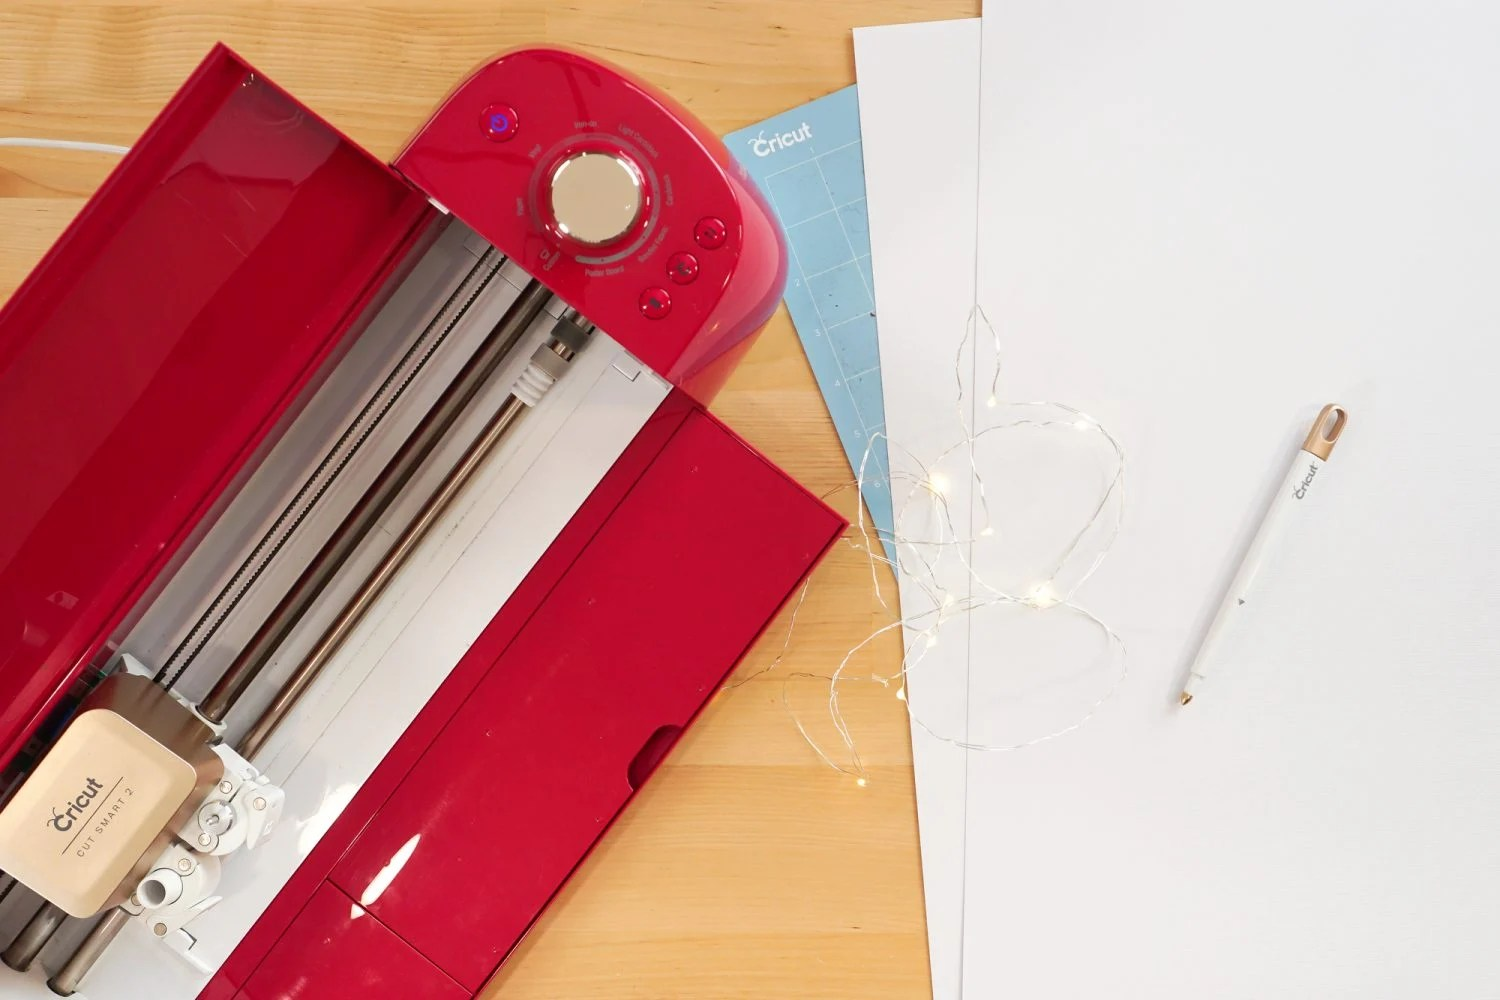 """Supplies needed for this project: Cricut Explore, 12"""" x 24"""" cutting mat, 12"""" x 24"""" white cardstock, scoring stylus, fairy lights"""